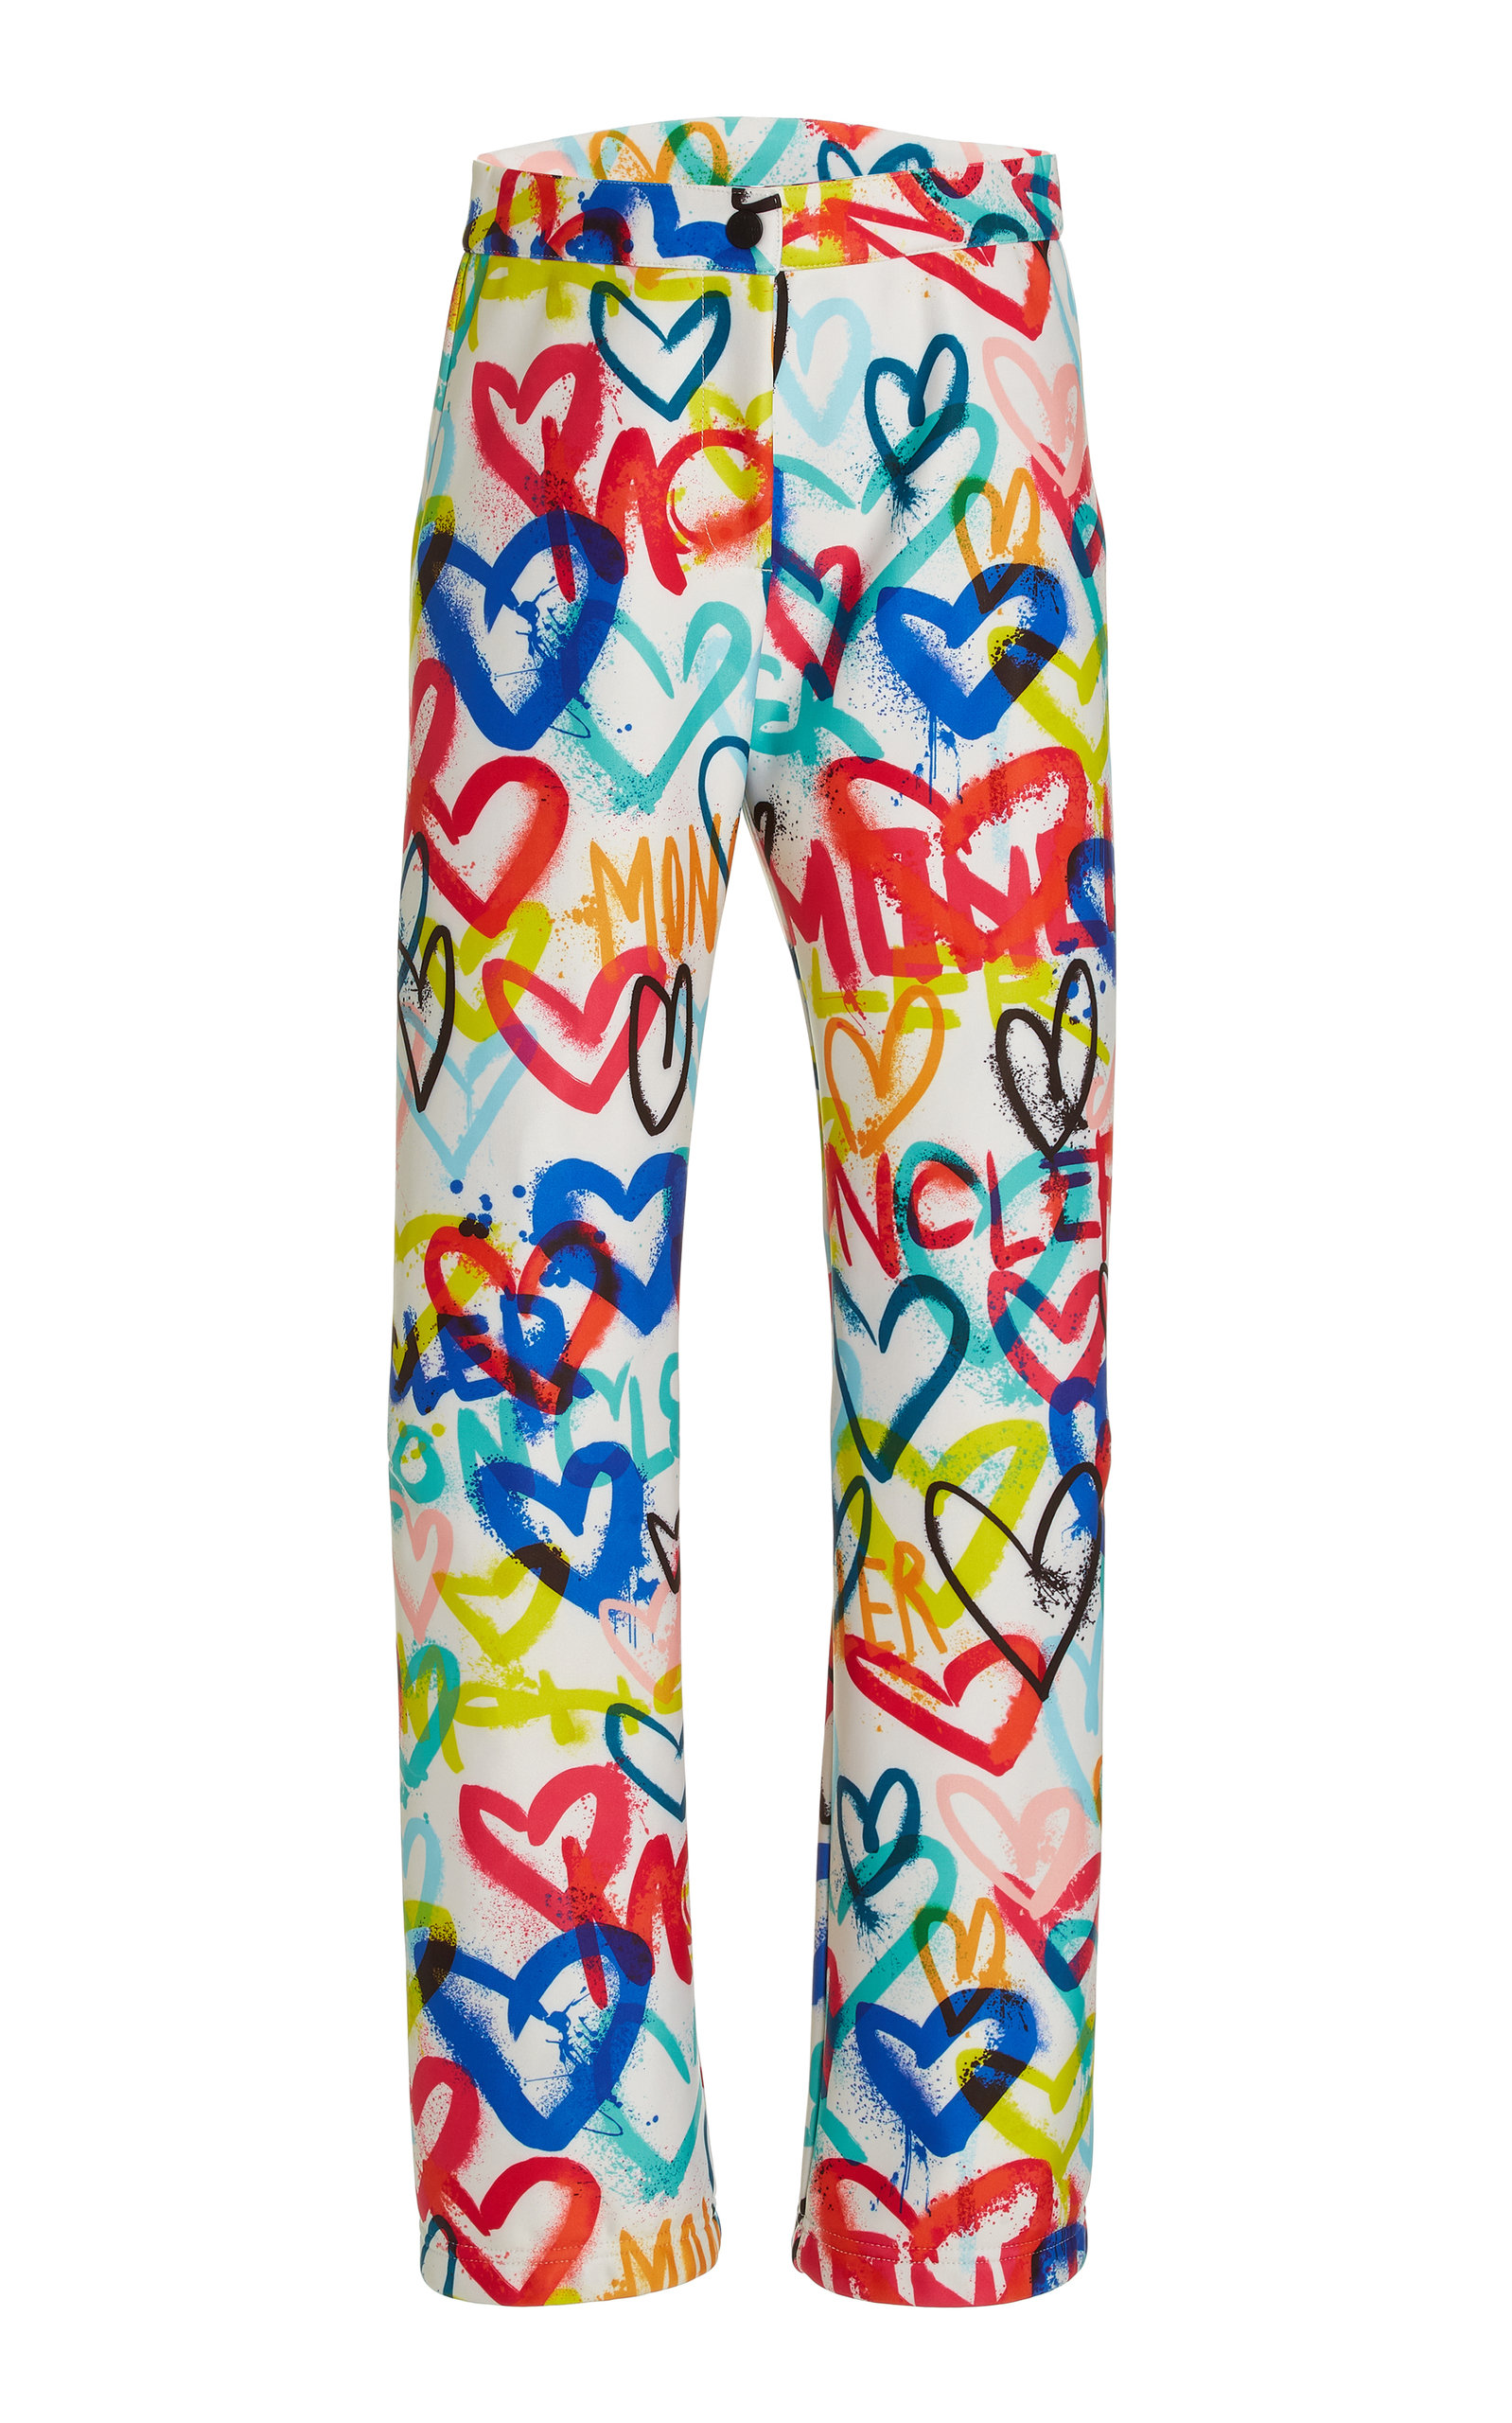 Moncler Genius 3 MONCLER GRENOBLE HEART-PRINT SHELL SKI PANTS